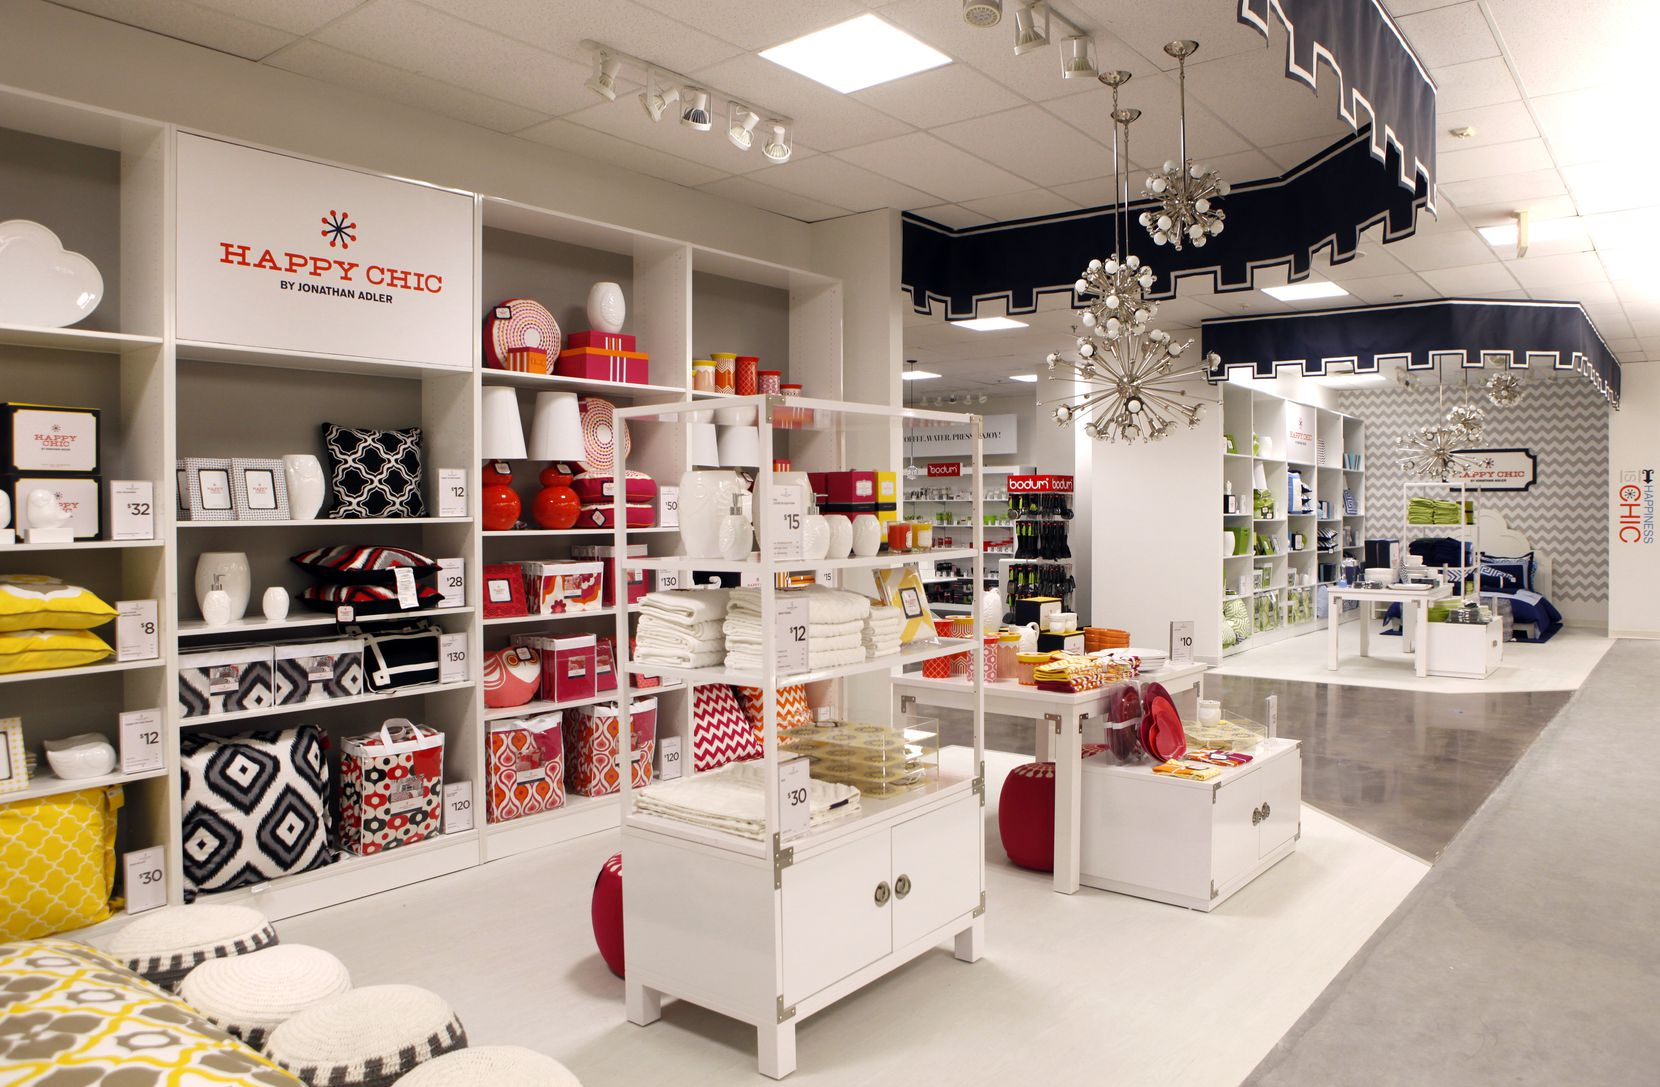 Happy Chic By Jonathan Adler was one of the shops added inside J.C. Penney stores during Ron Johnson's tenure as CEO. This one was at Stonebriar Centre in Frisco in 2013. Other shops were from Bodum, Jonathan Adler, Michael Graves and Martha Stewart.